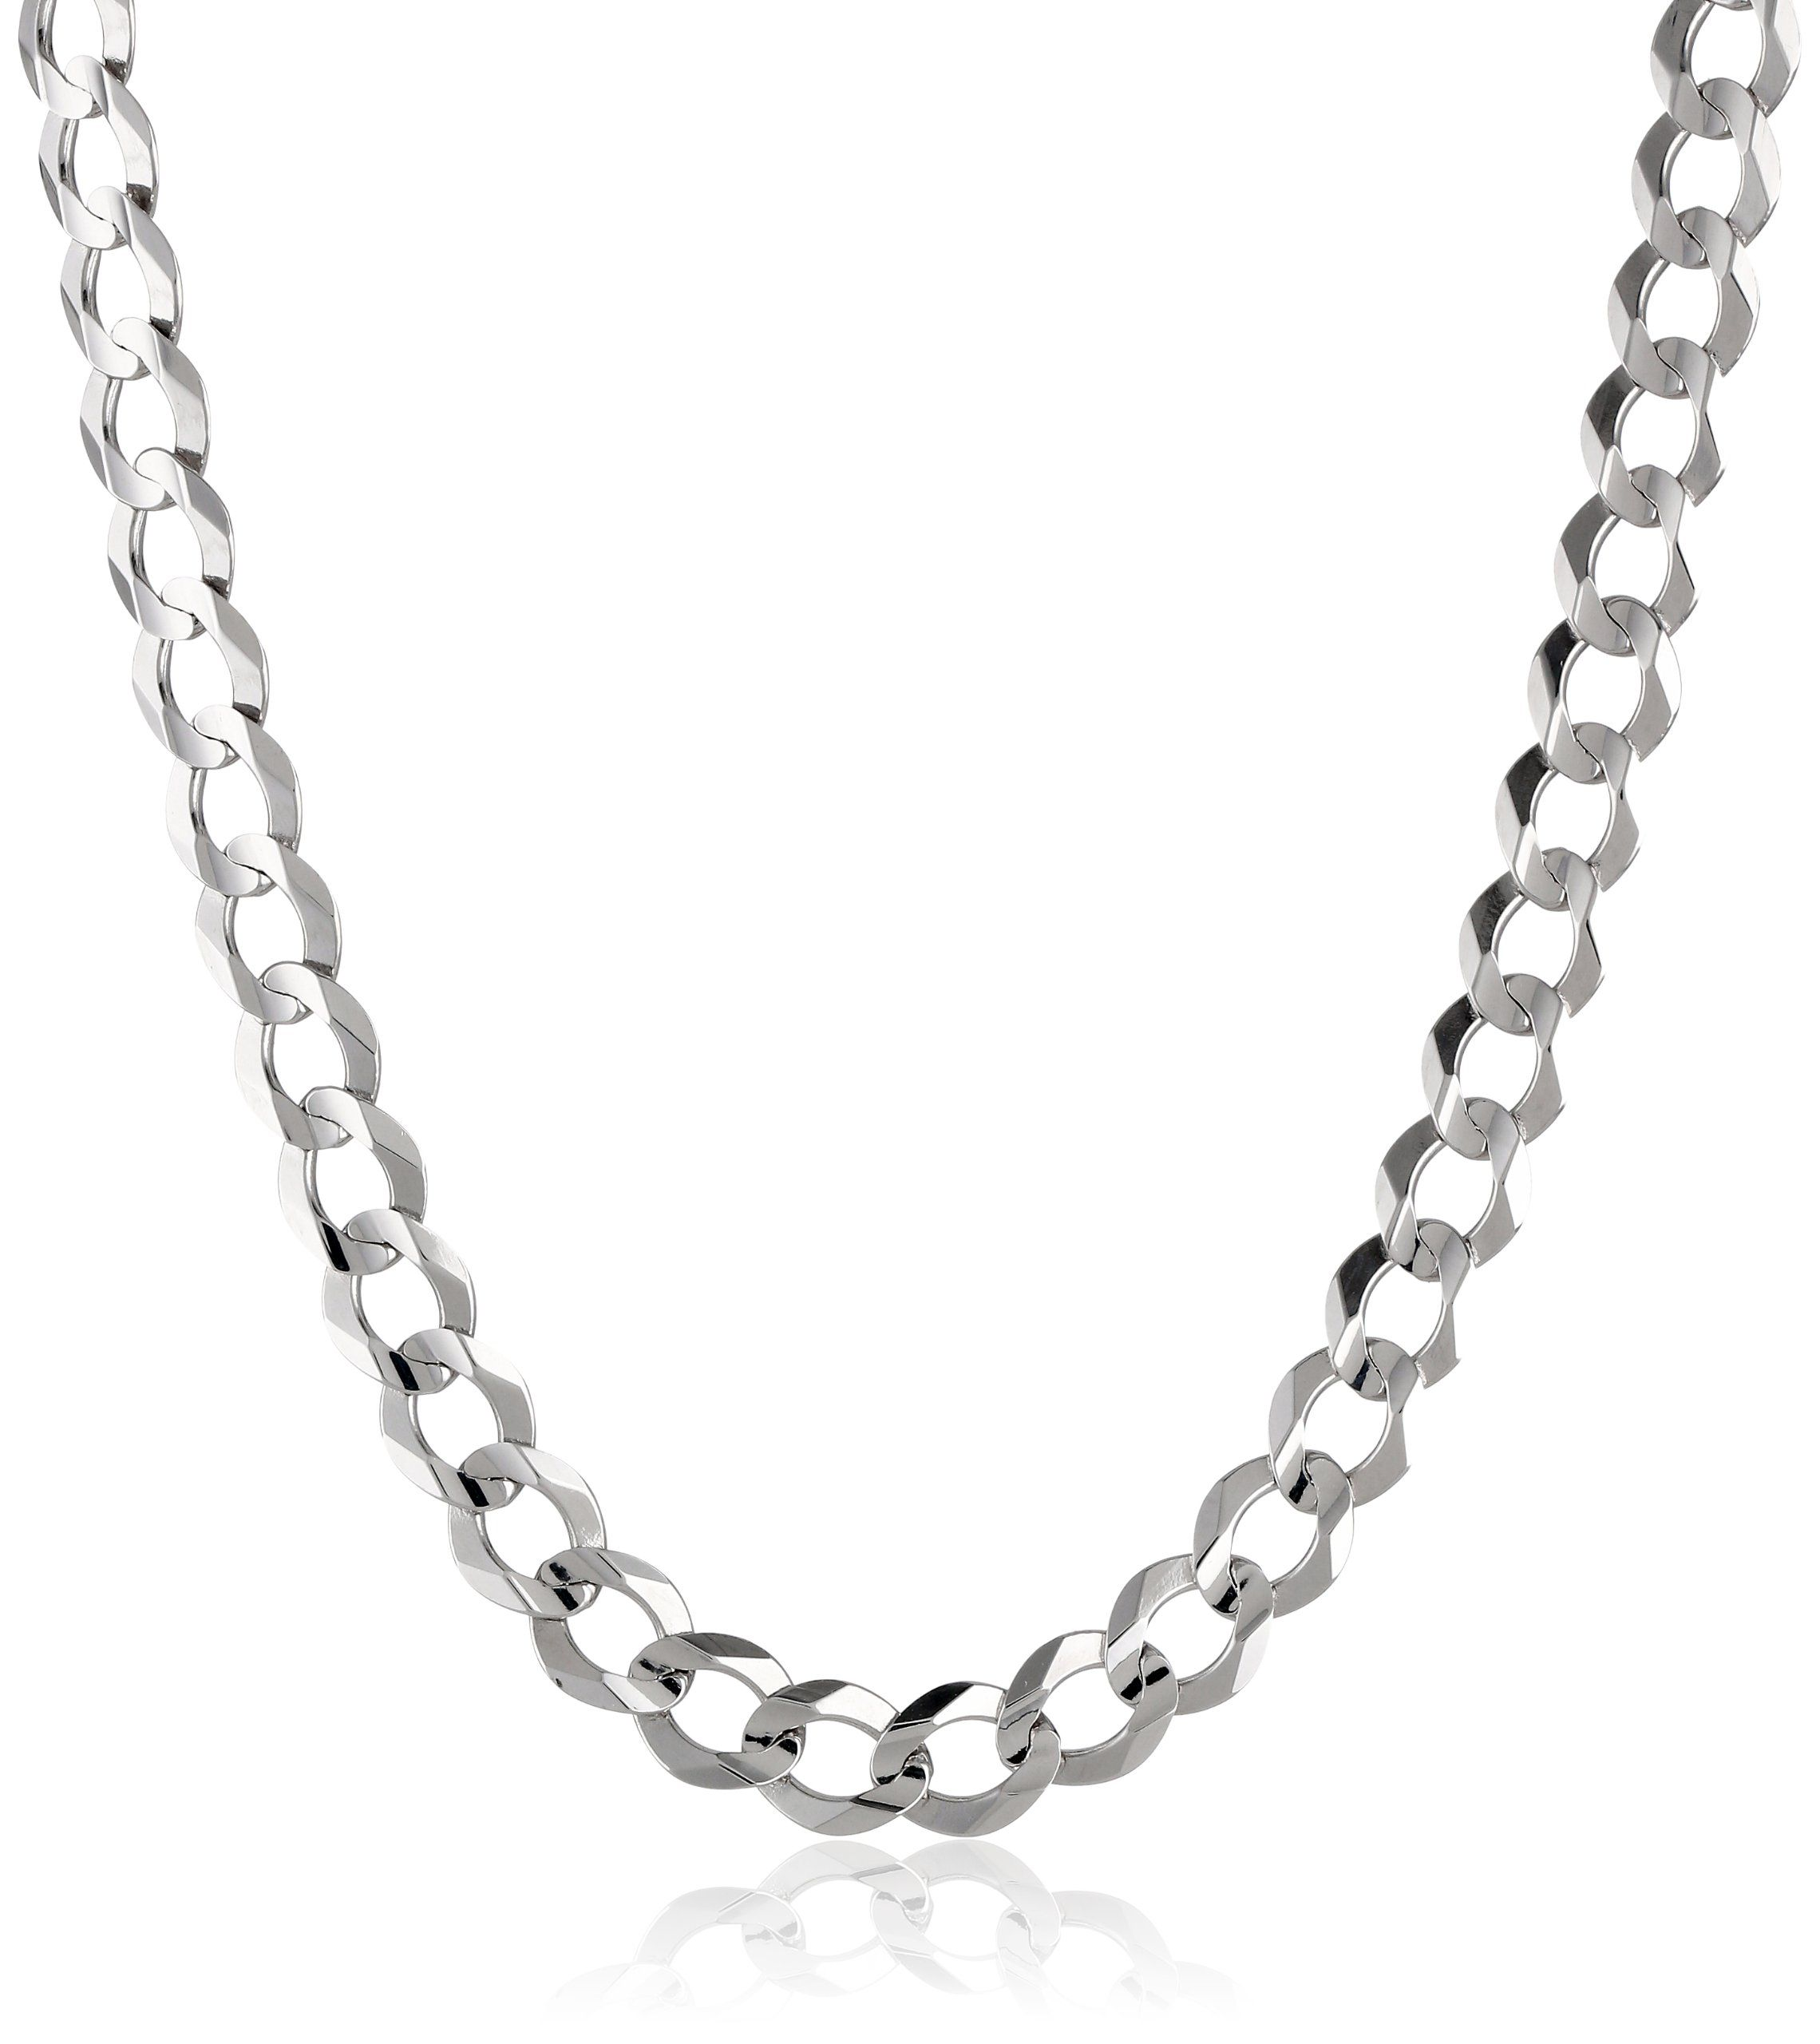 Pin On Necklace Chain